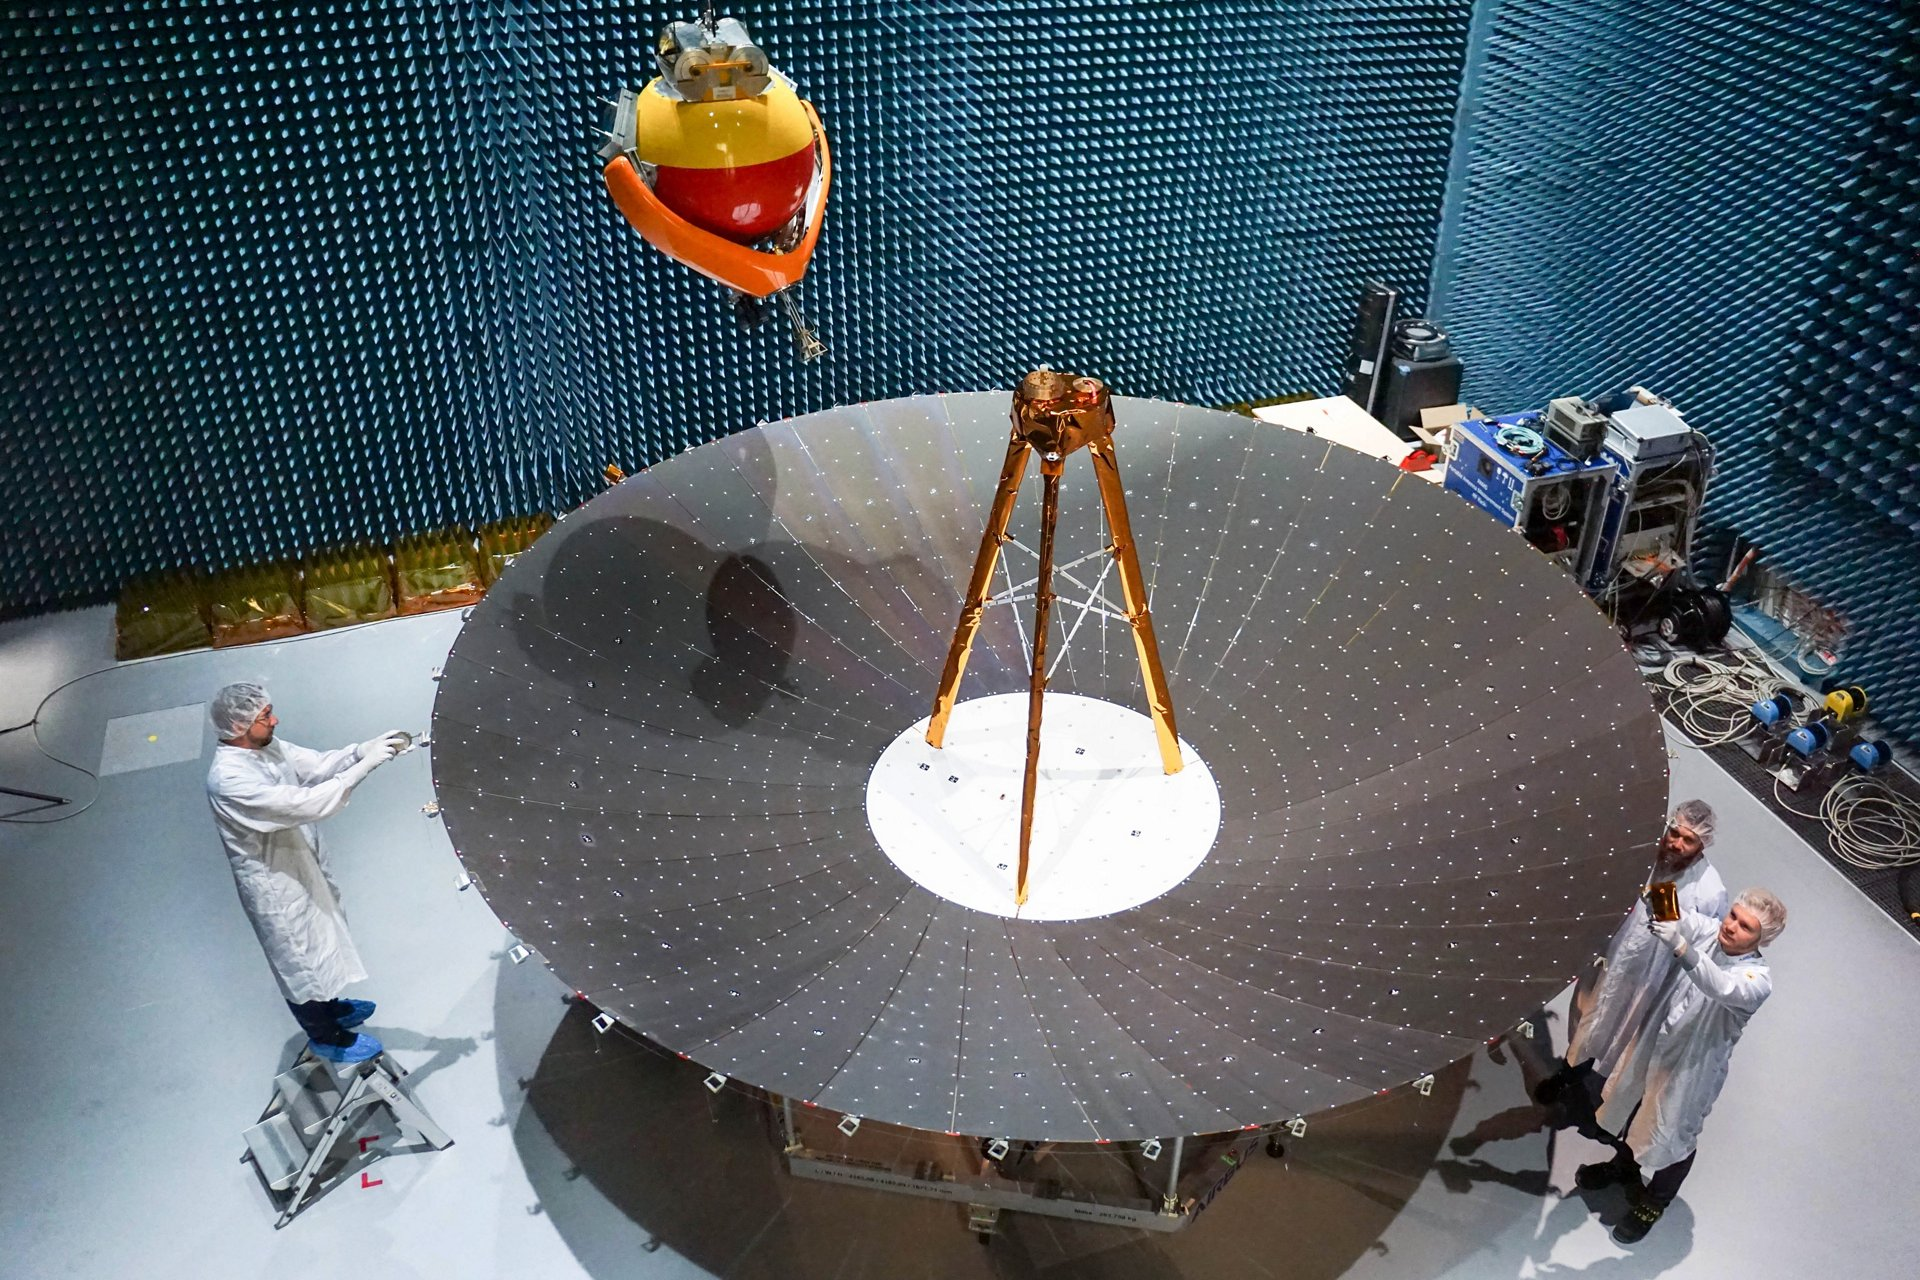 The 70 kilogram deployable reflector will help enable higher resolution from a radar instrument for Earth observation. With its exceptionally lightweight design, its stiffness and high robustness, the semi-rigid reflector technology offers significant advantages compared to classic mesh reflectors.